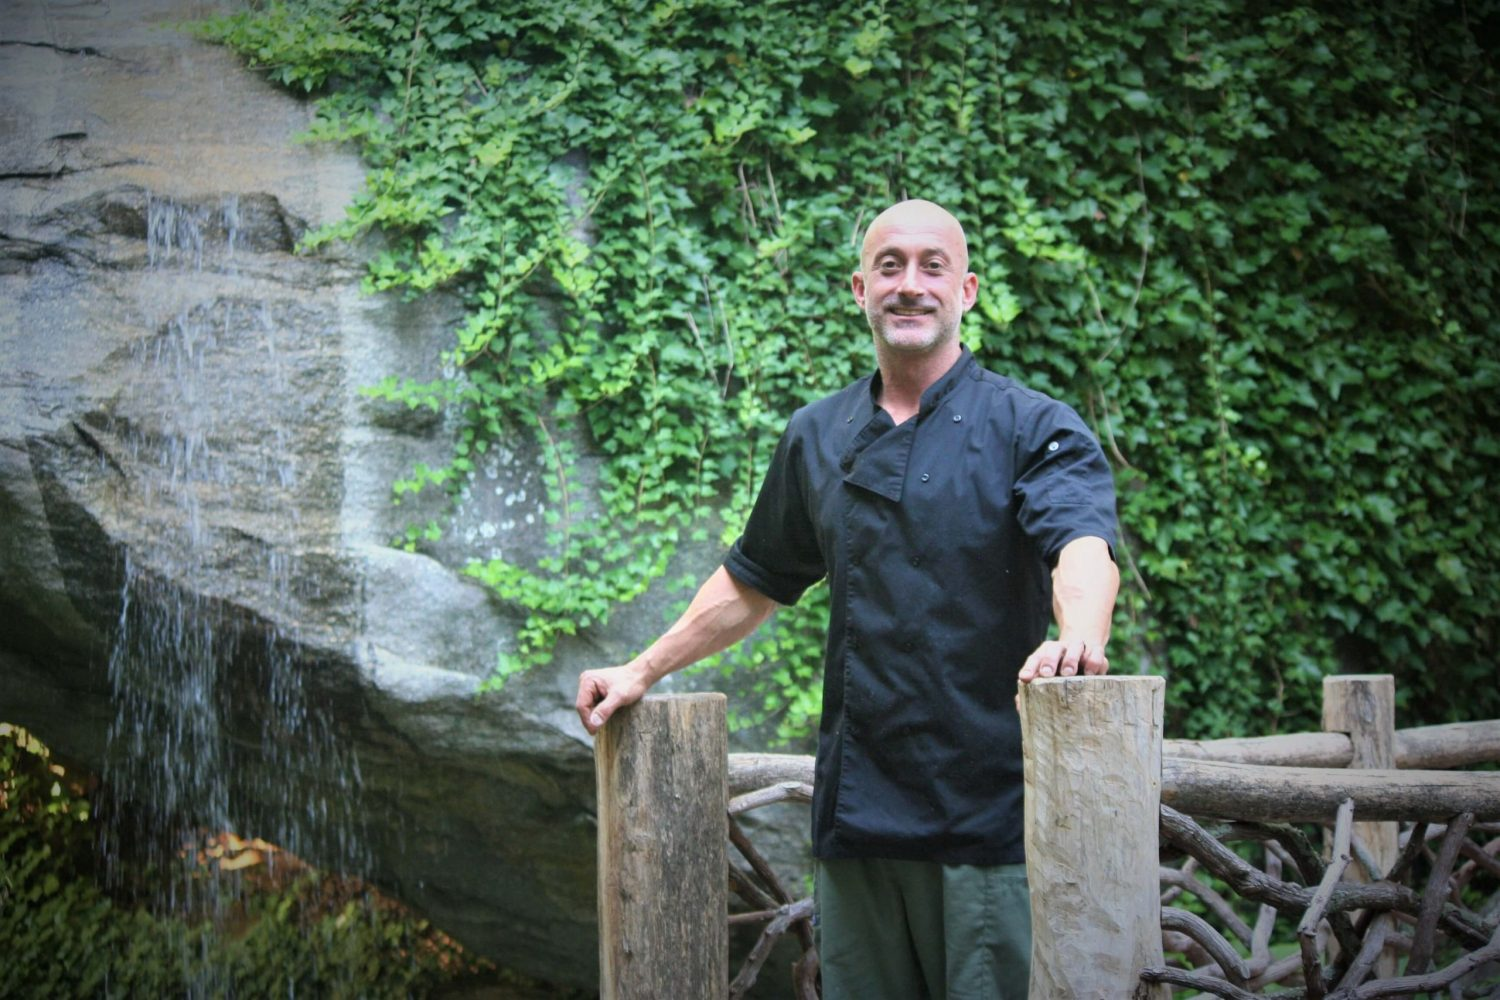 The Esmeralda Inn and Restaurant Chef